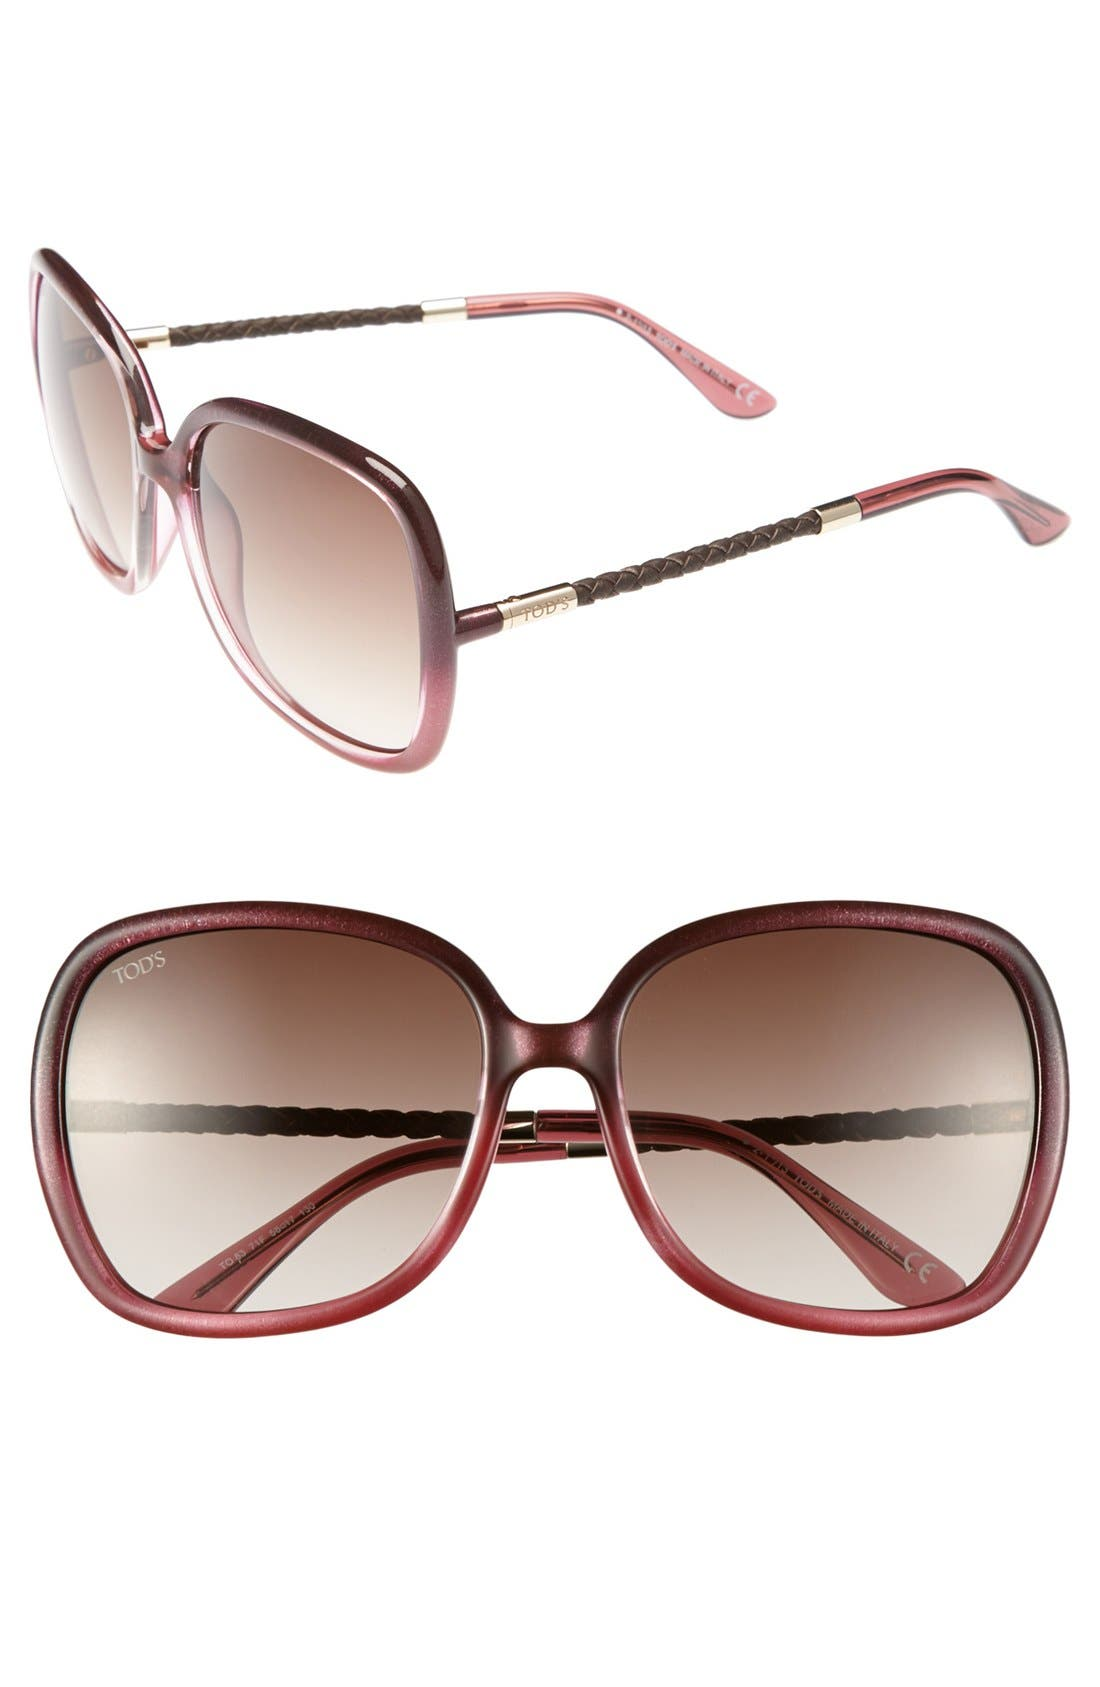 Main Image - Tod's 58mm Woven Leather Temple Sunglasses